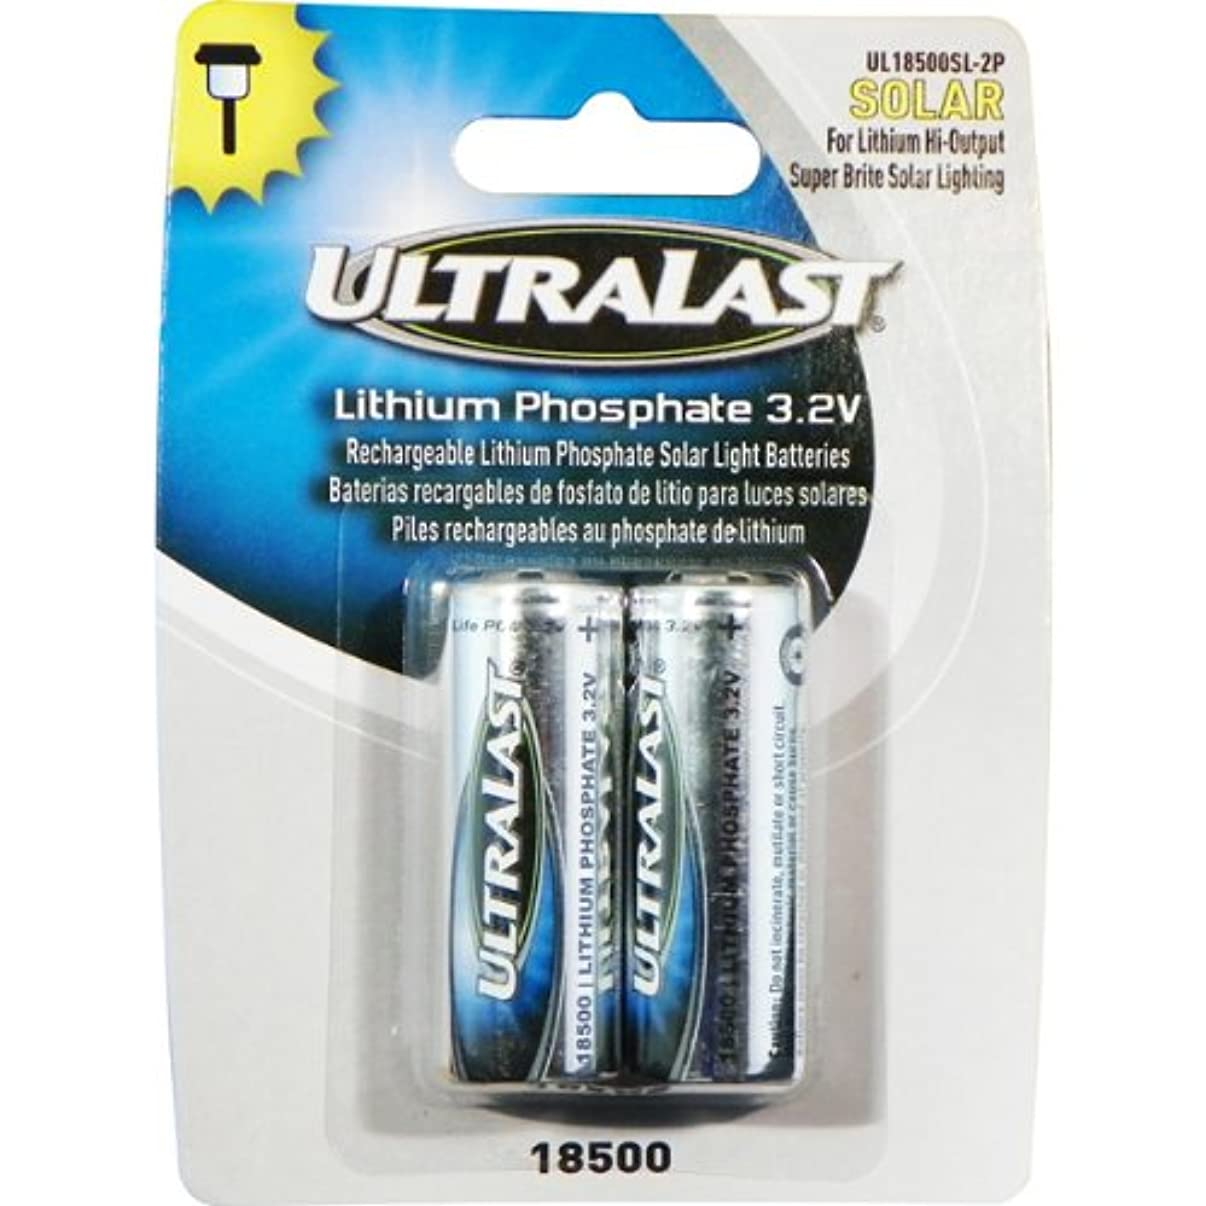 UltraLast Lithium Phosphate Rechargeable Batteries for 3.2 Volt Outdoor Solar Lighting - 1000mAh